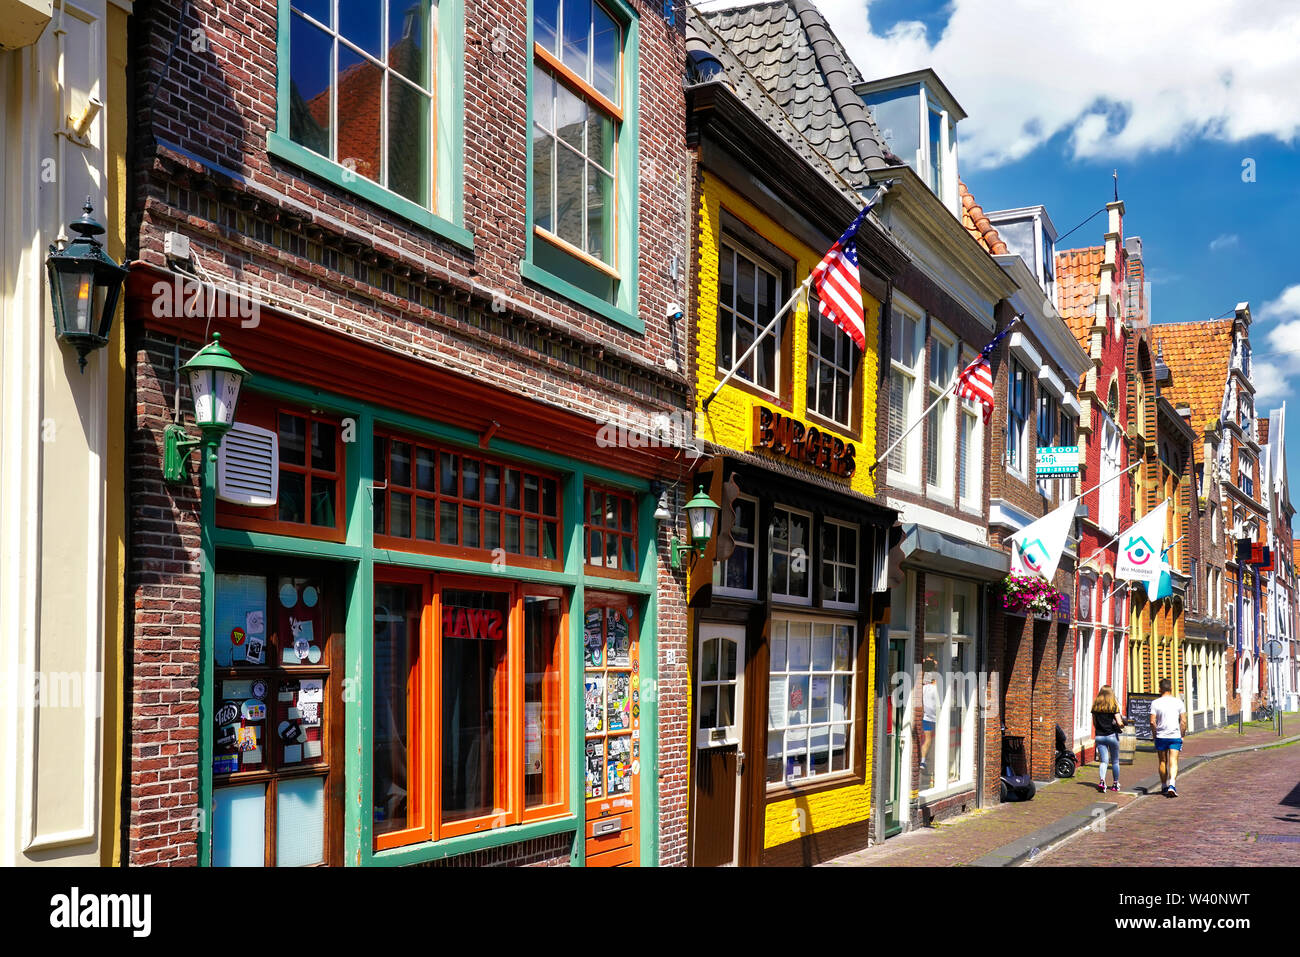 Hoorn, Netherlands, 06/22/2019: Beautiful traditional Dutch houses and stores in the old town of Hoorn - Stock Image